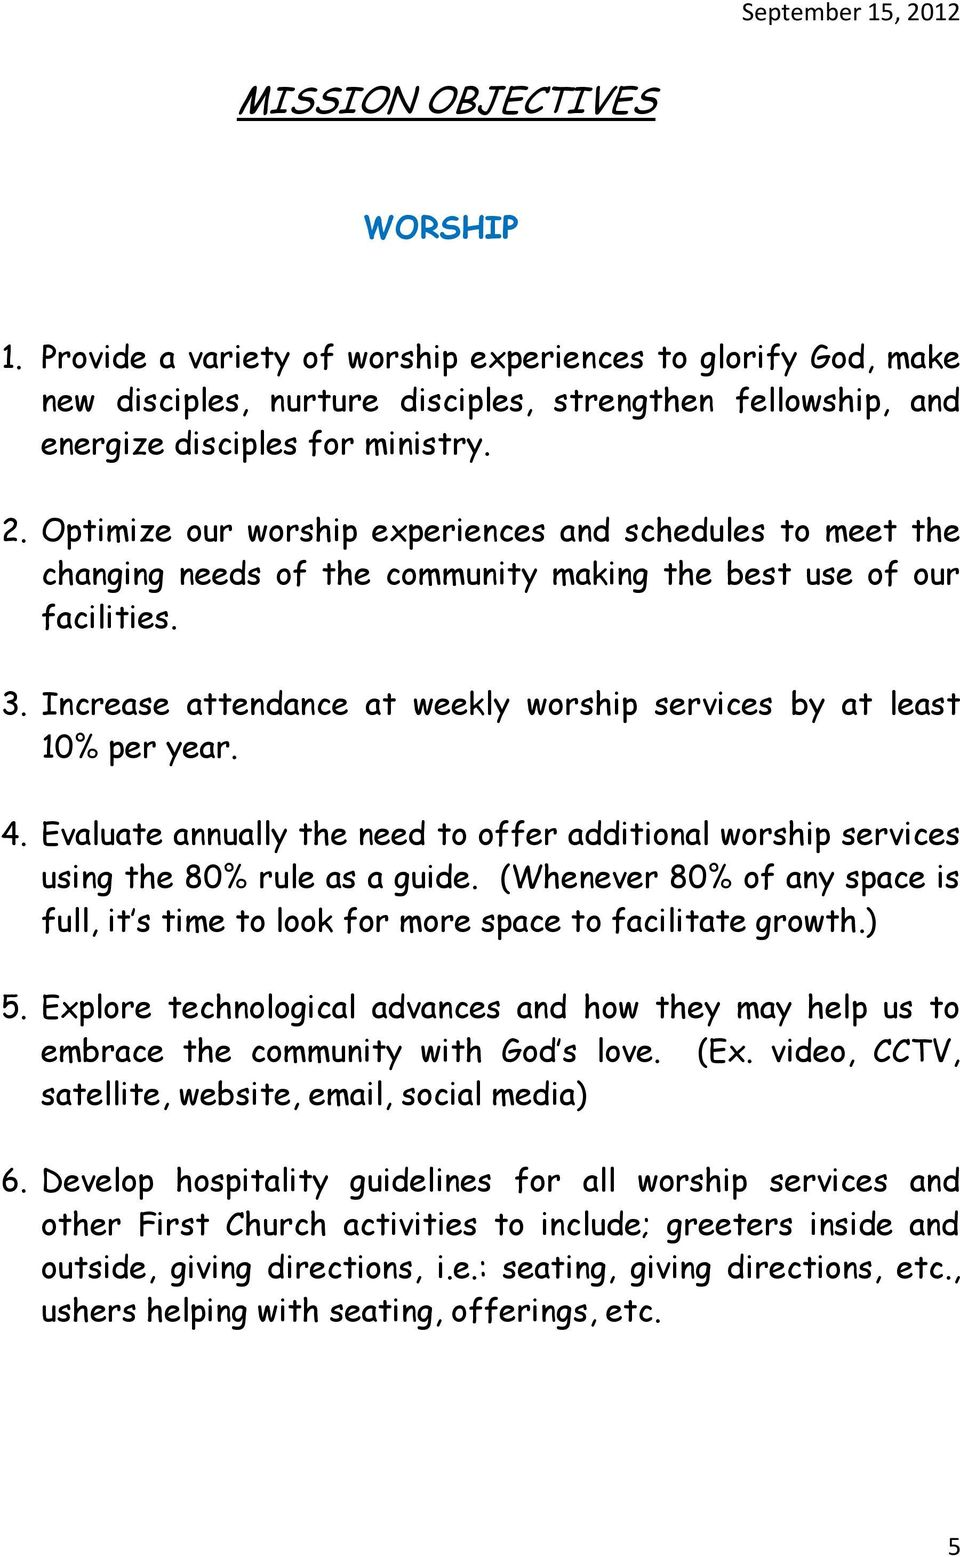 Increase attendance at weekly worship services by at least 10% per year. 4. Evaluate annually the need to offer additional worship services using the 80% rule as a guide.